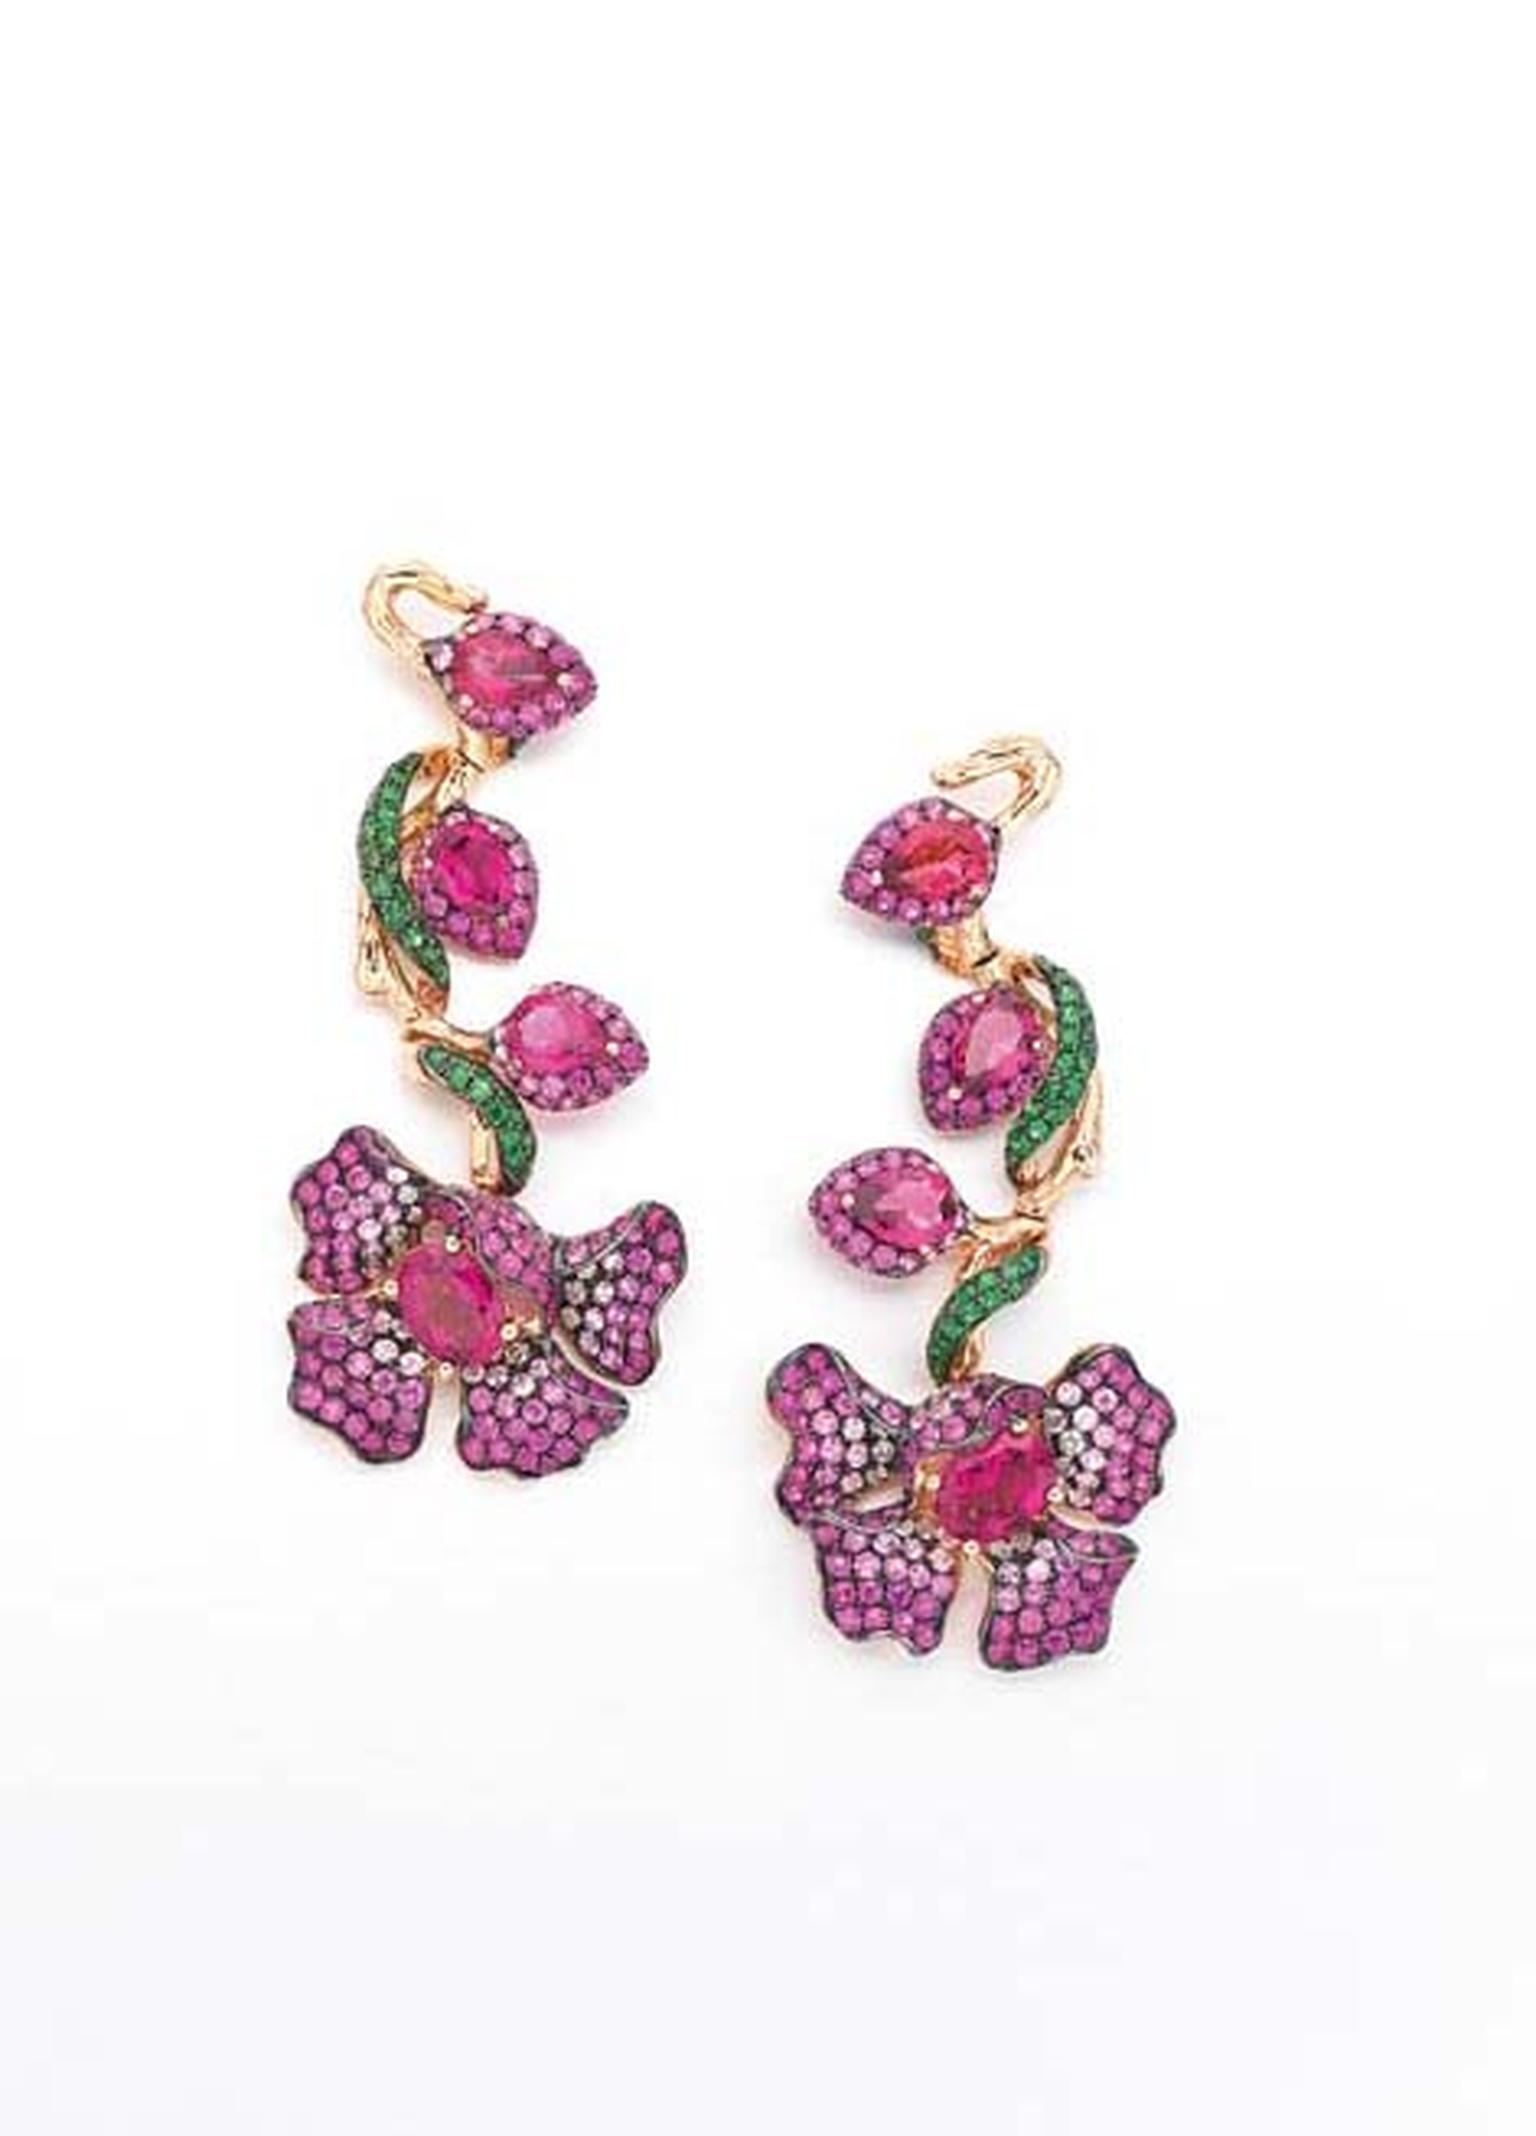 Wendy Yue's Diamond Tree earrings with rubellites, white sapphires, pink sapphires and tsavourites.